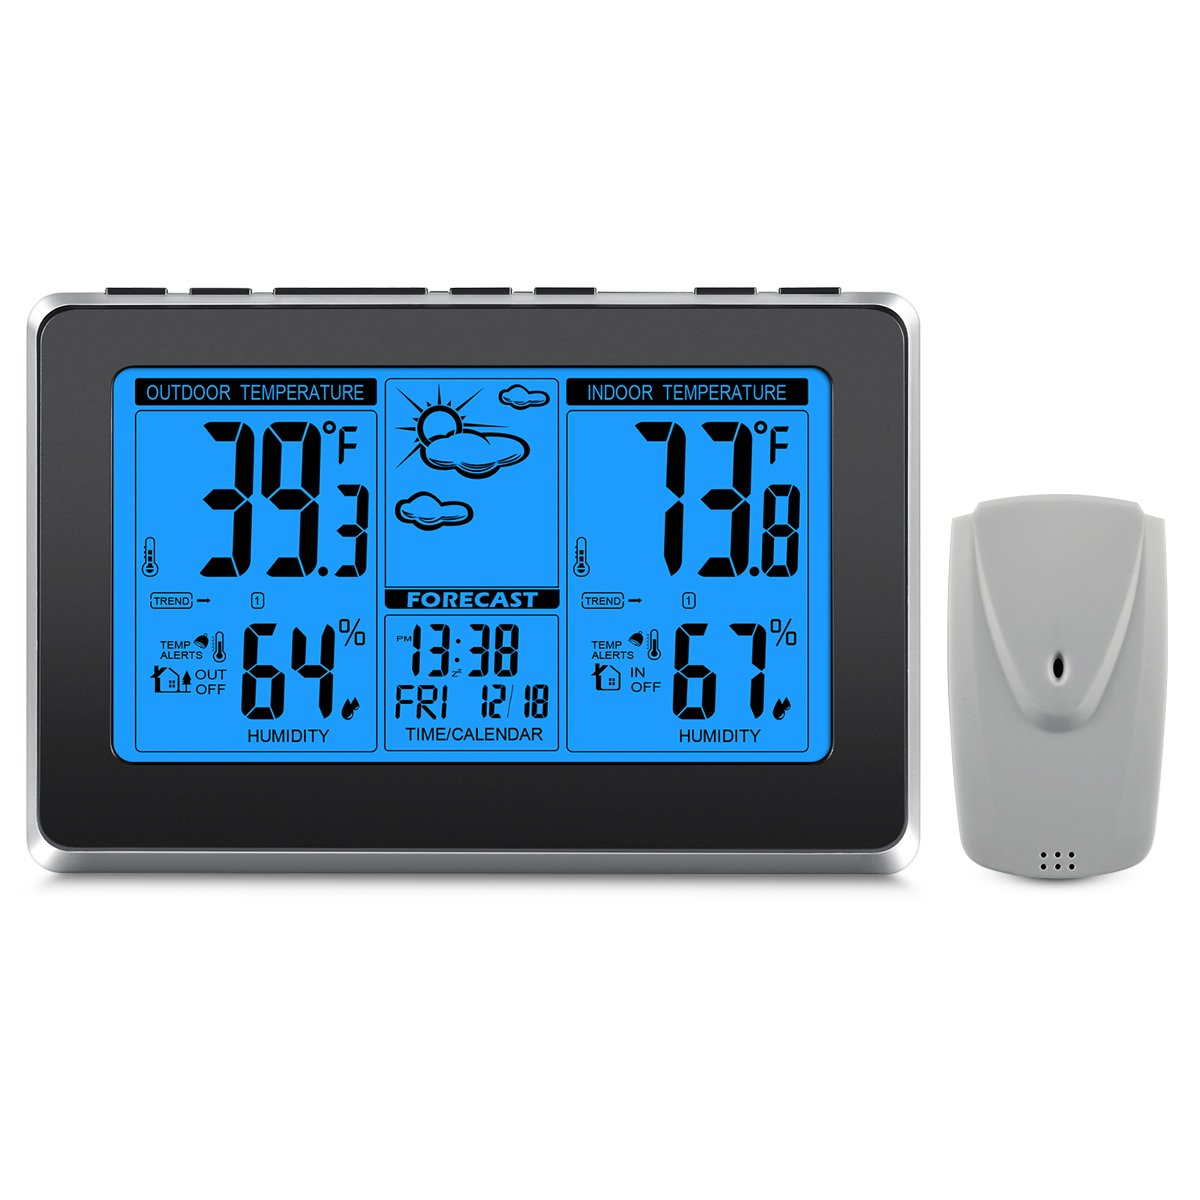 ORIA Weather Station, Wireless Digital Thermometer with Indoor & Outdoor Temperature Alerts, Back Lights & Dual Alarm Clocks, Pressure and Moon Phase, Calendar Display (Batteries not included)